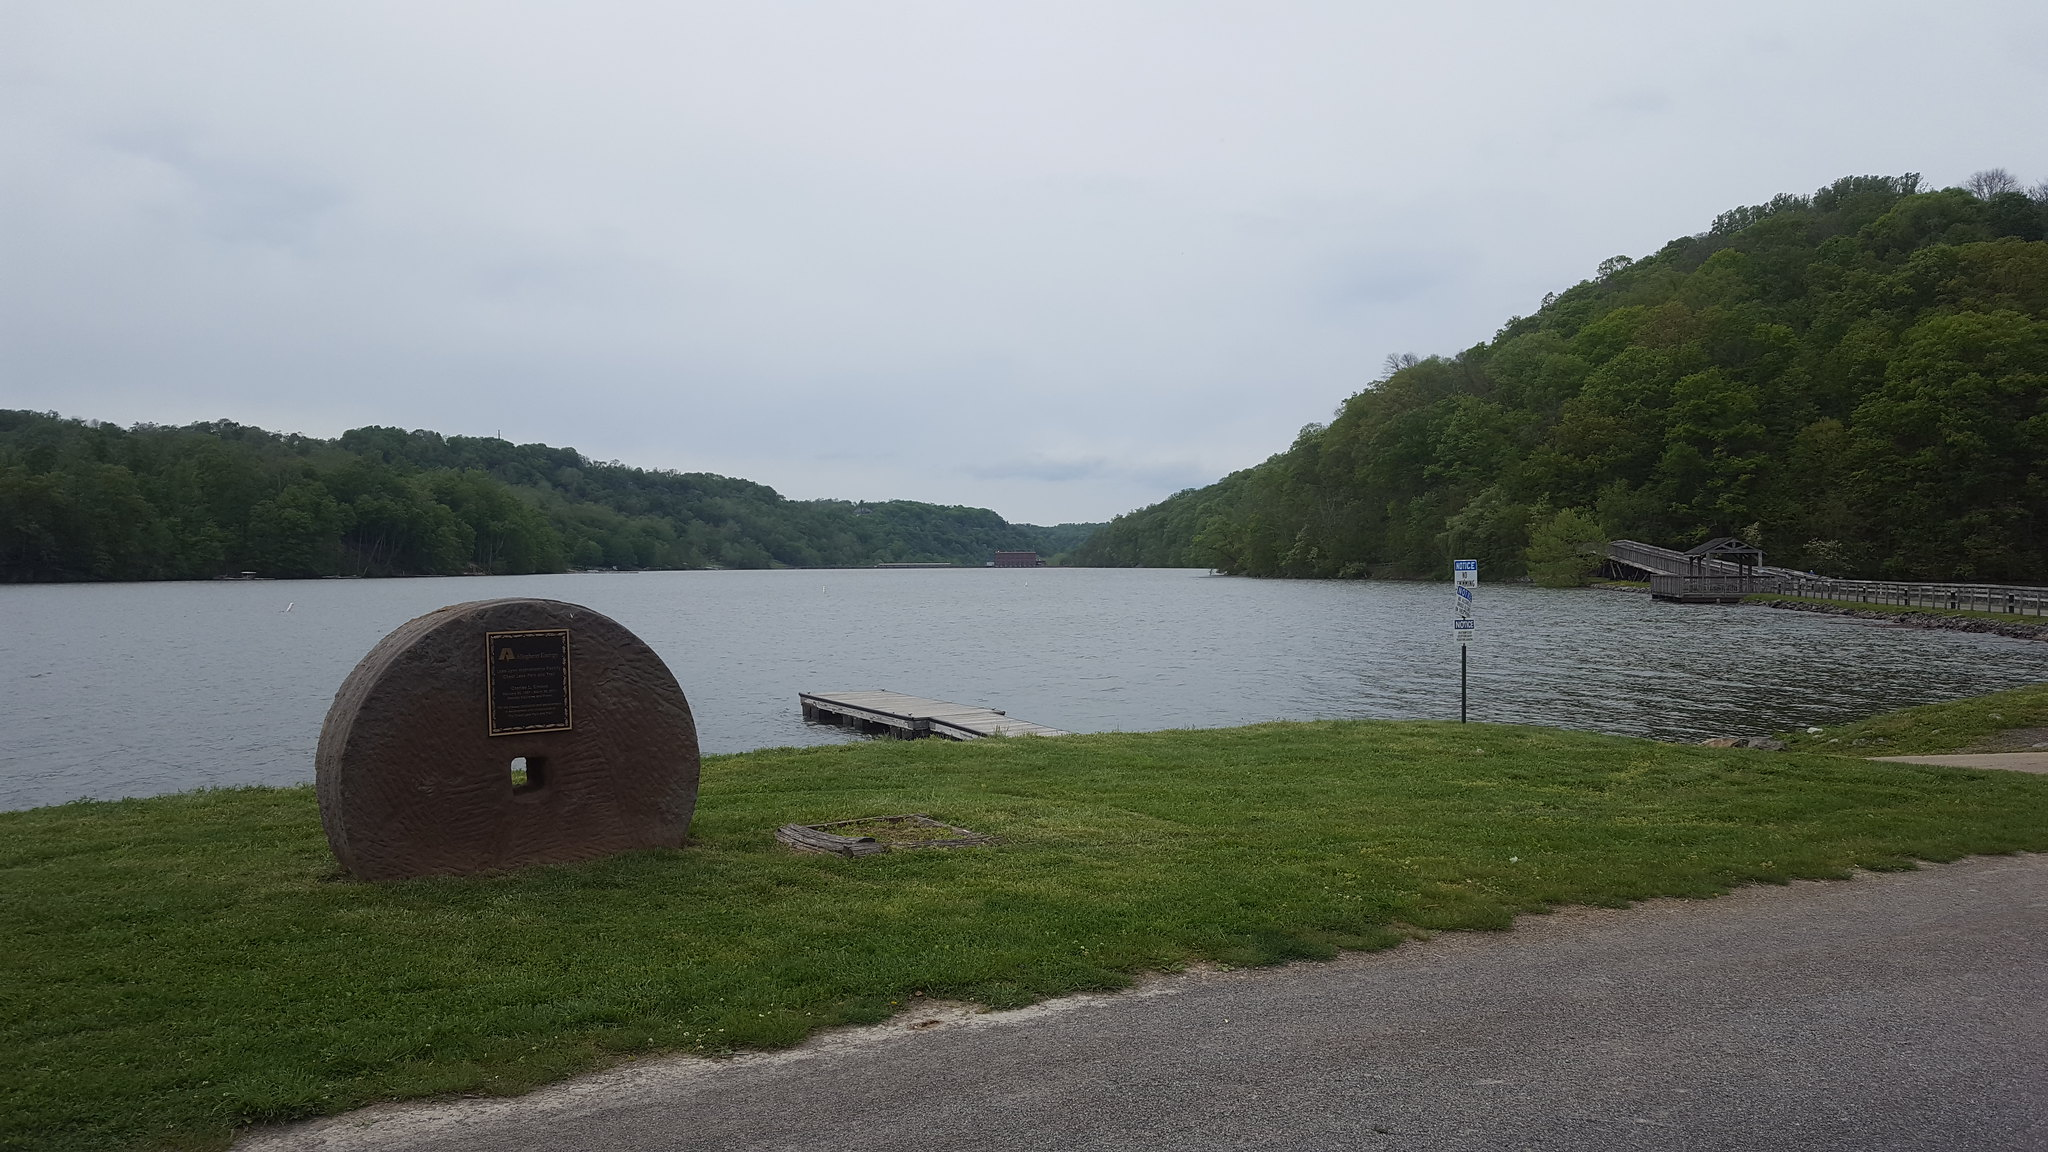 Loch narrow-leaved: landing and care 18